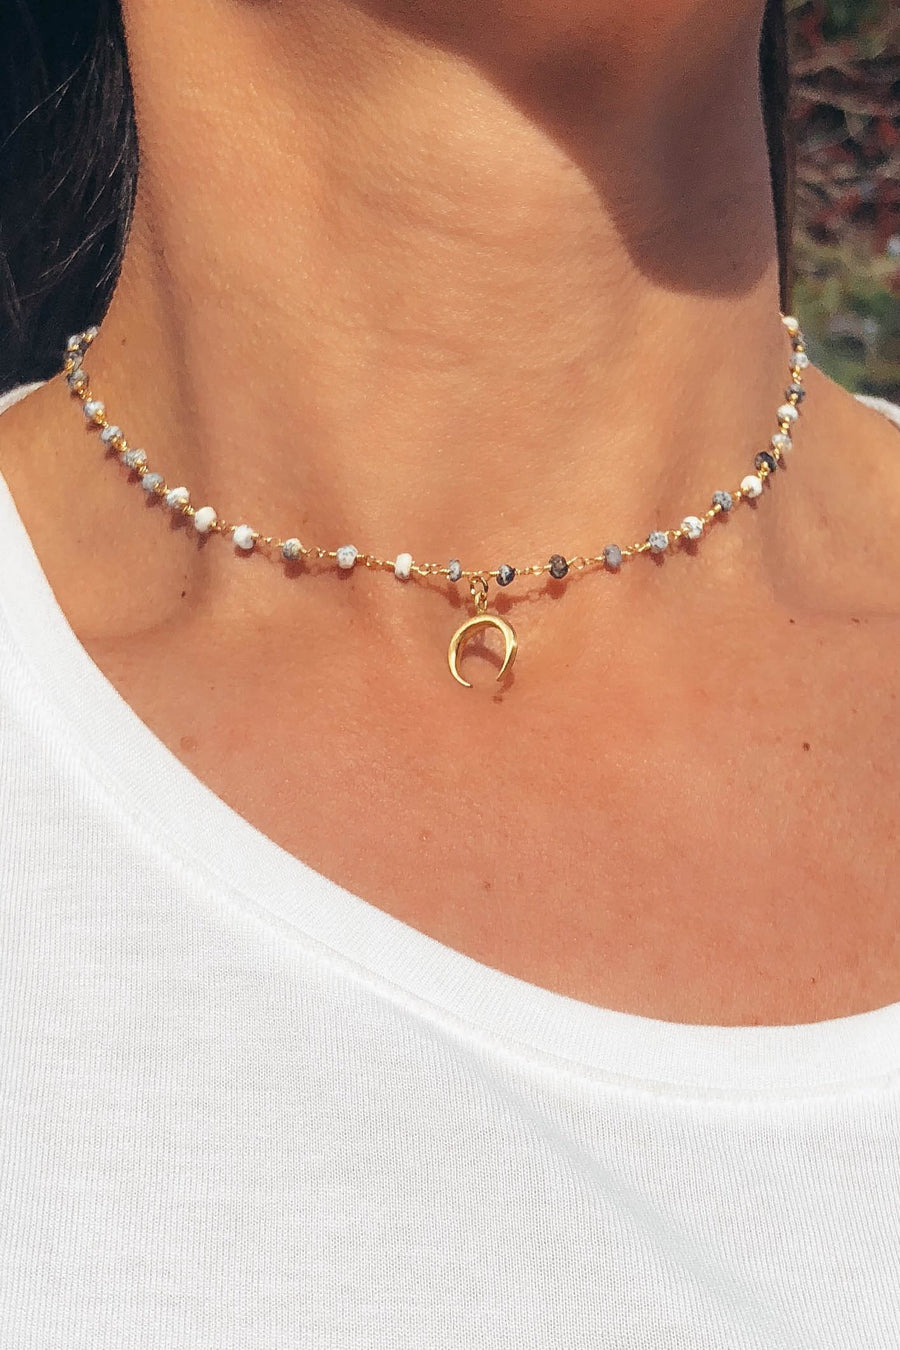 obsidian beaded choker with a gold crescent moon attached